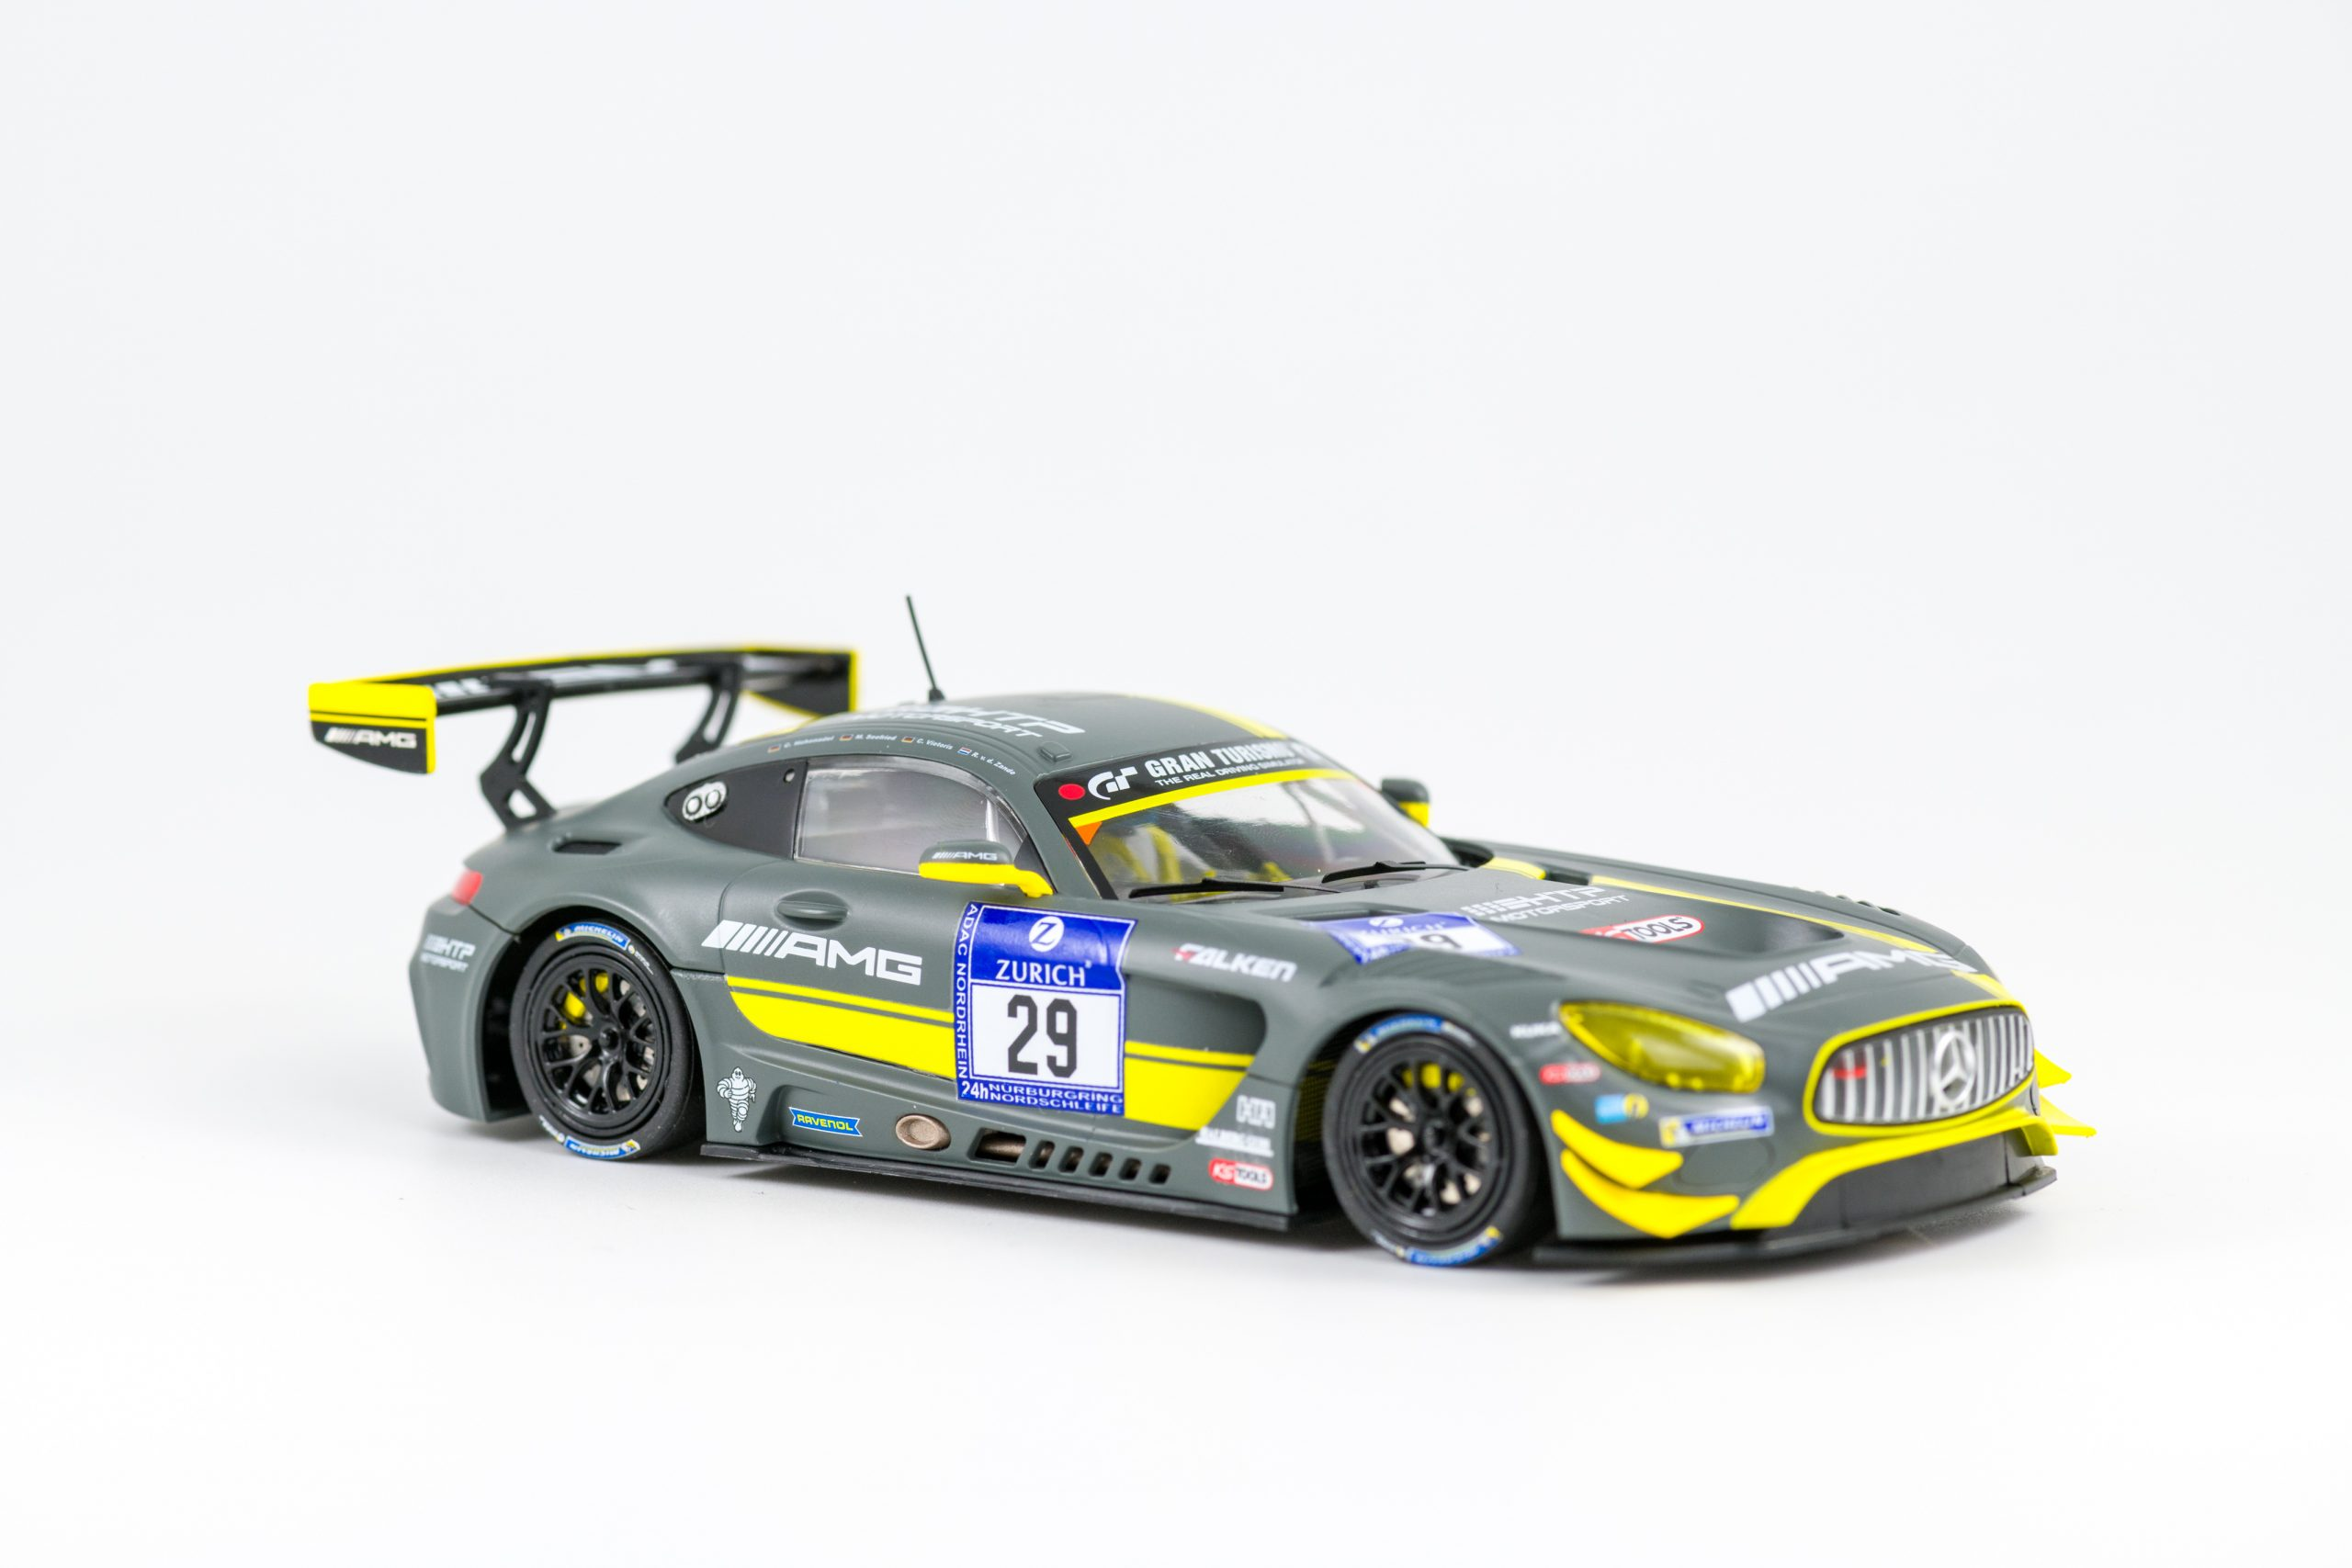 Mercedes-AMG GT3 No.29 KS Tools, Nurburgring 2016 2nd